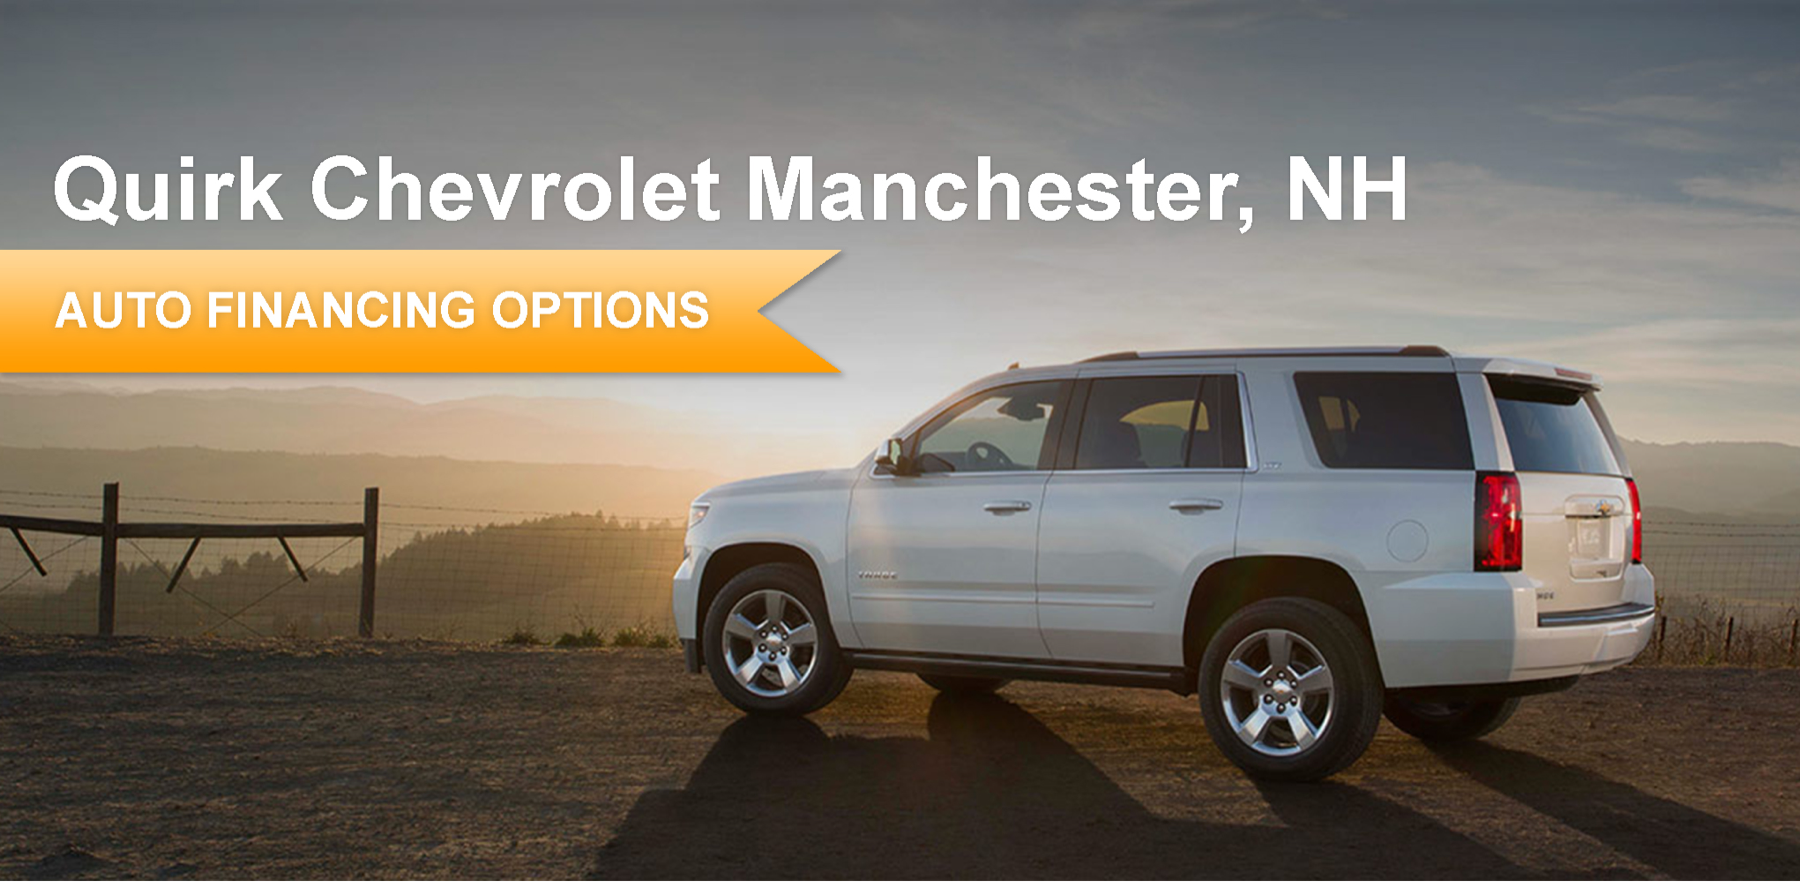 New Chevrolet Financing | Quirk Chevrolet Manchester in NH